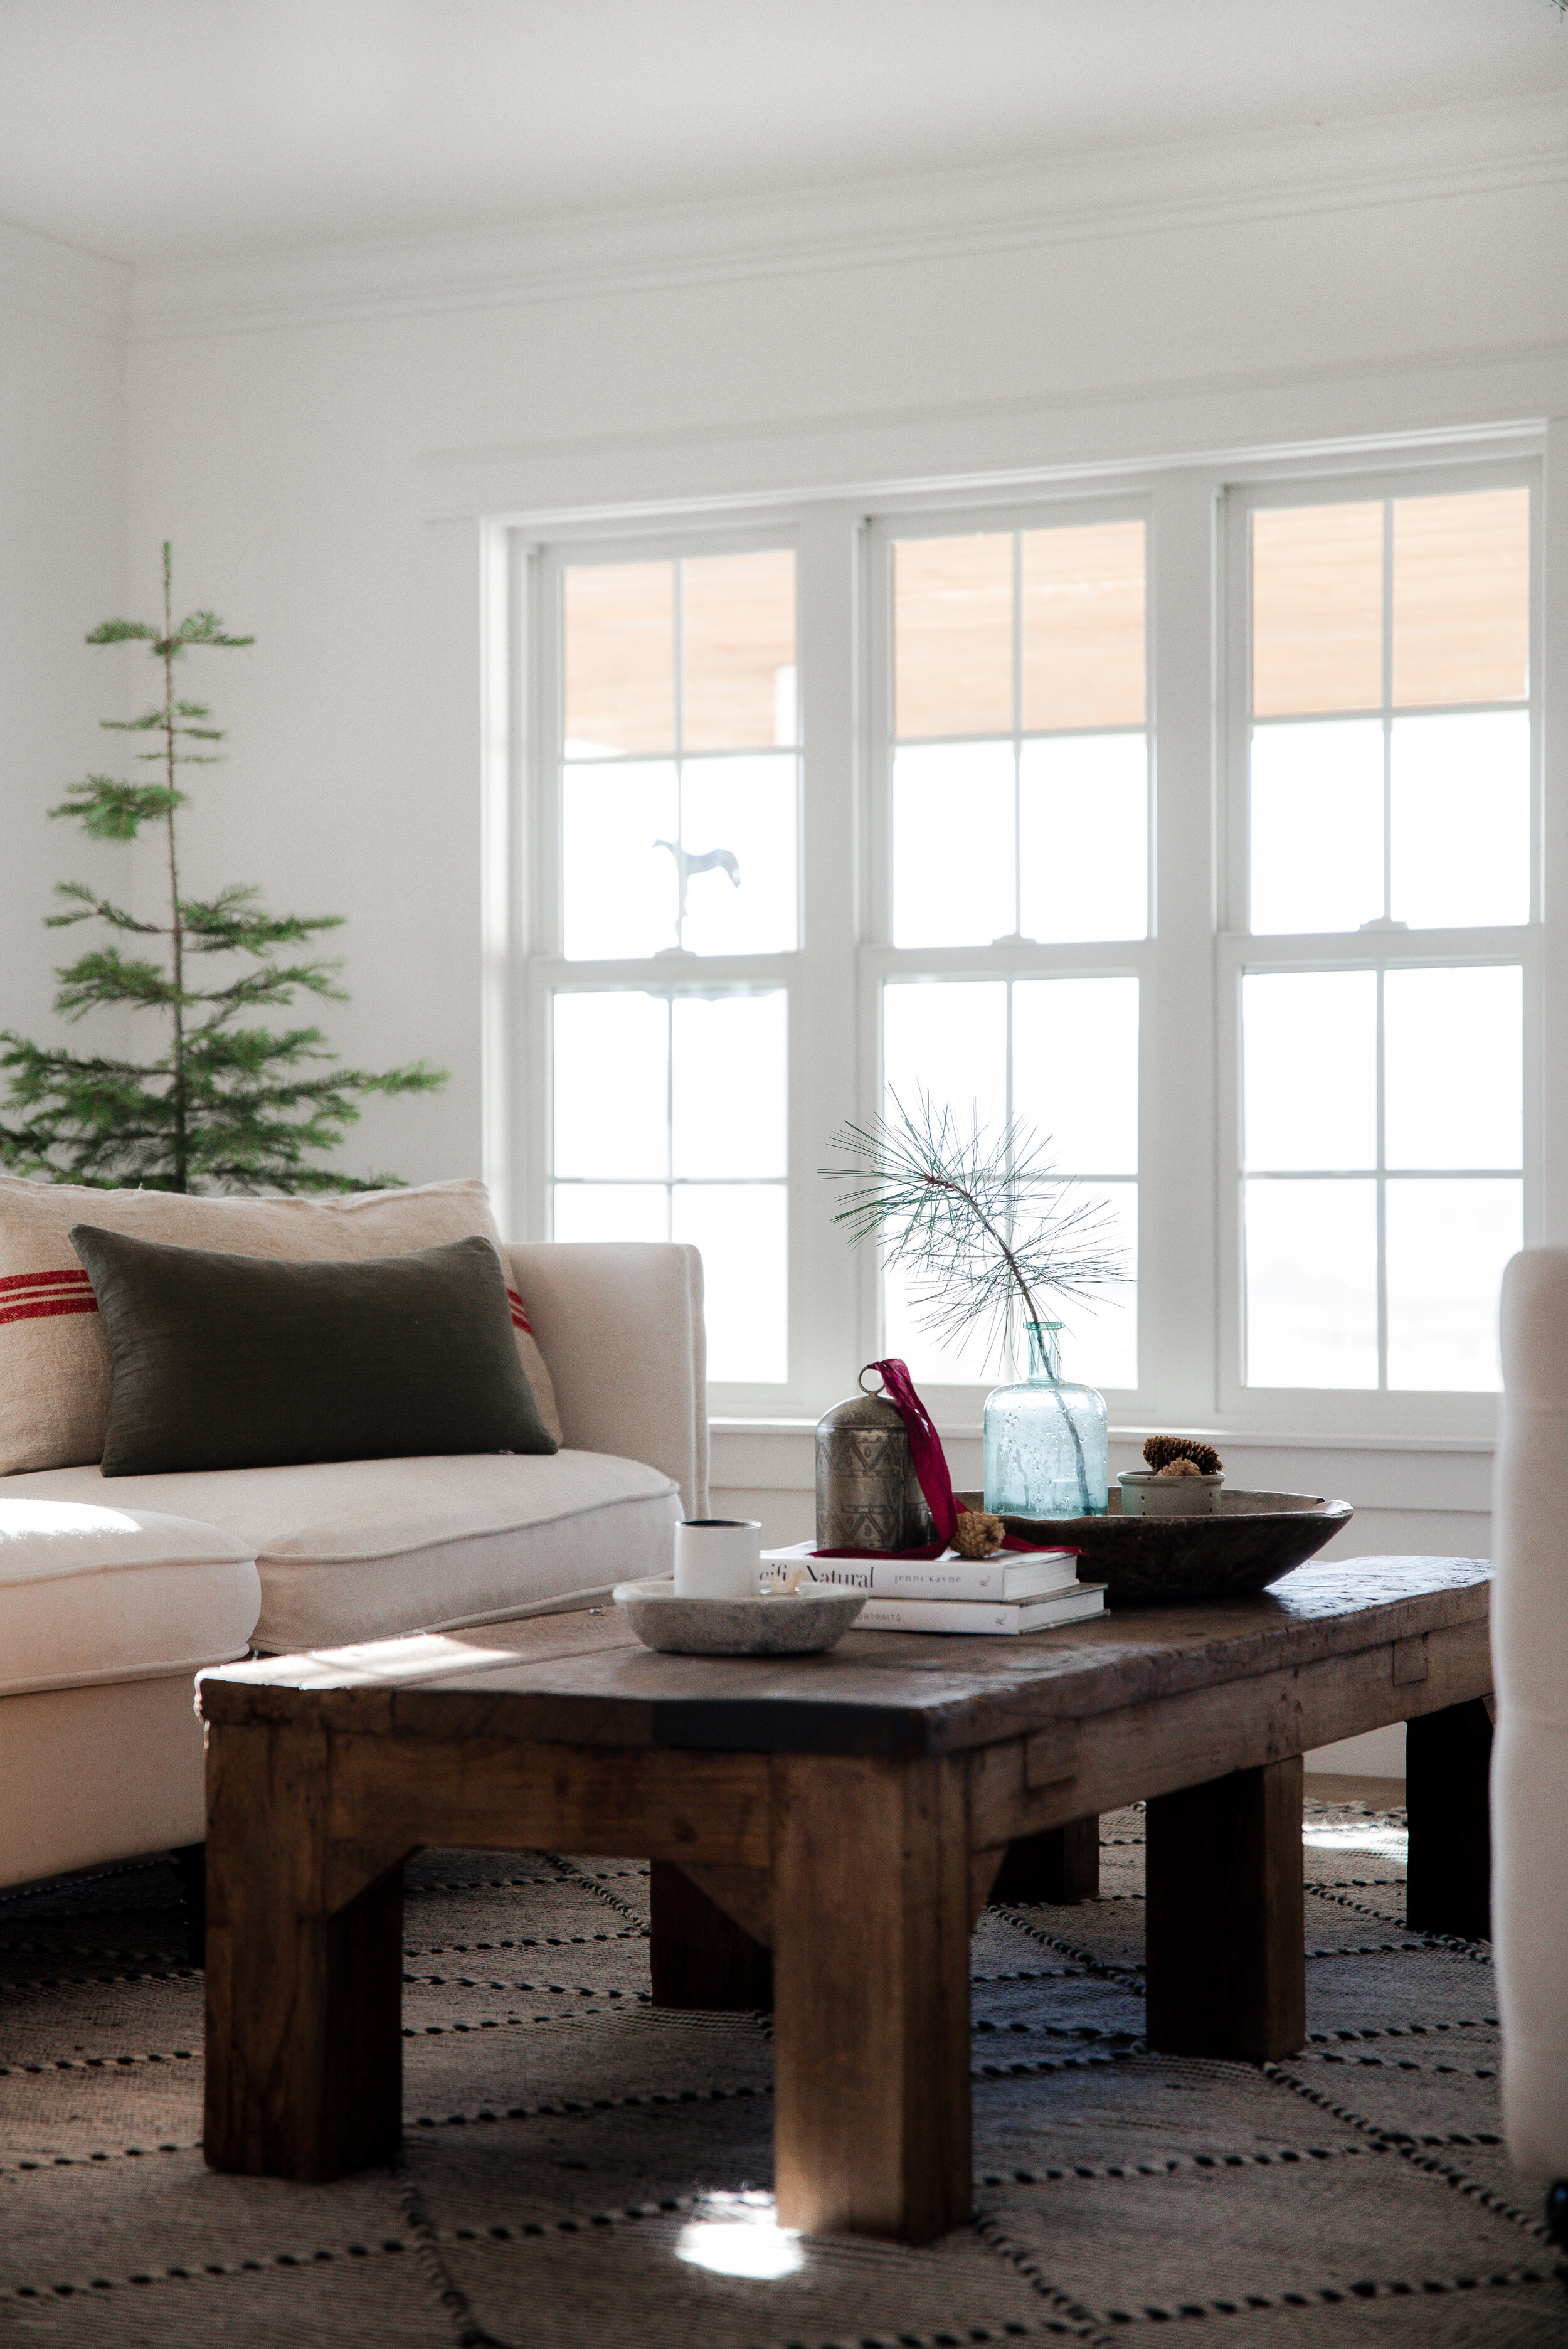 Get inspired to add little Christmas touches as the holidays near! These simple decorating ideas will help you dress up your living room!